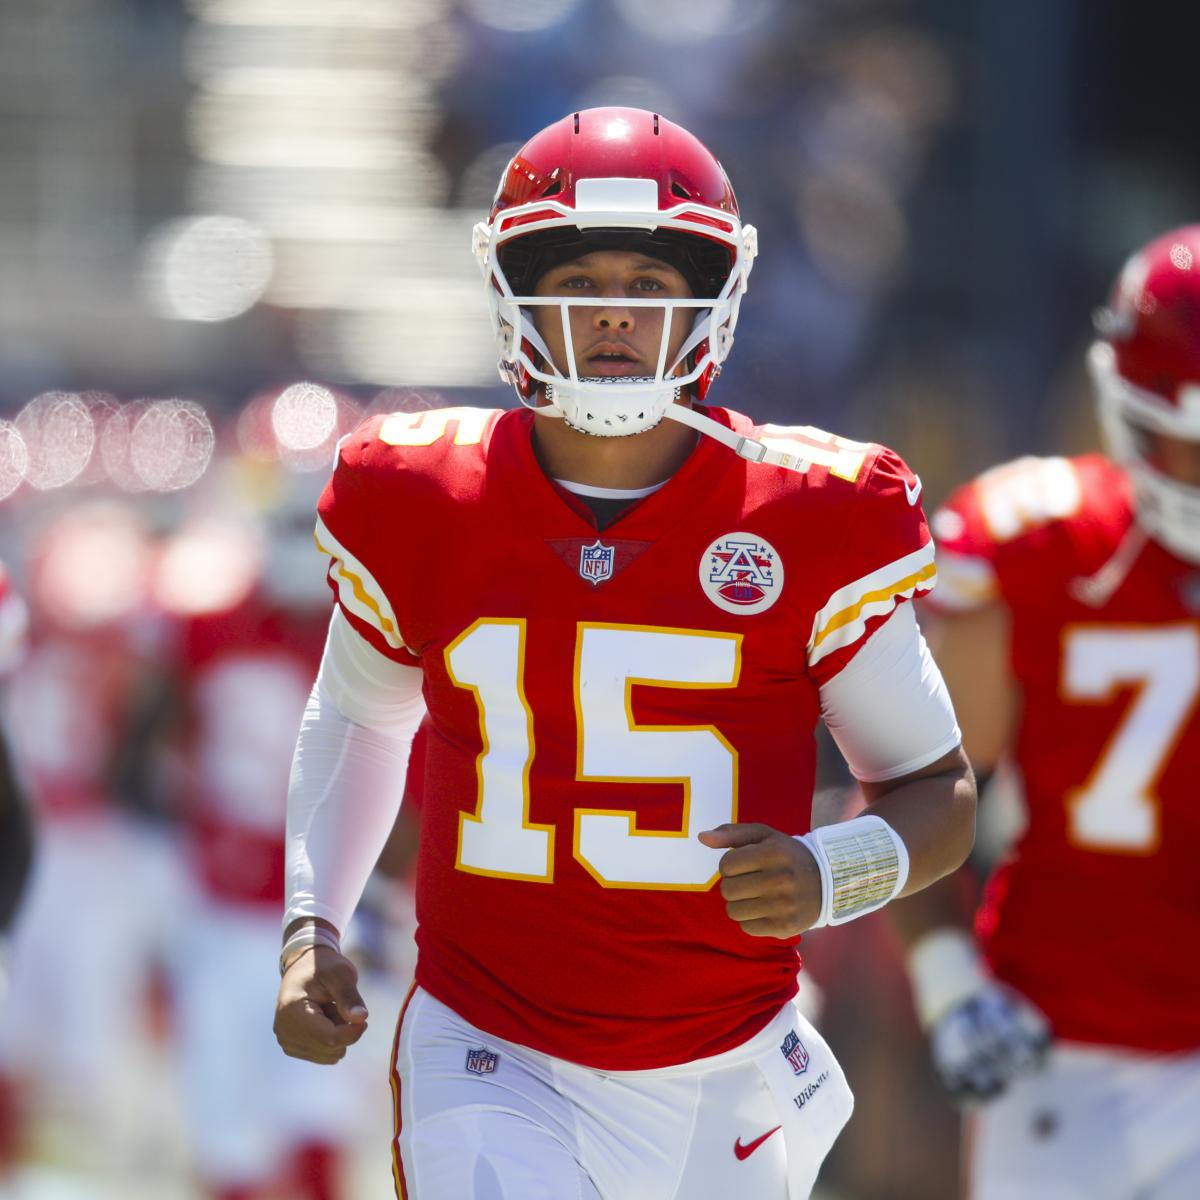 Steelers chiefs betting line premier betting long list today